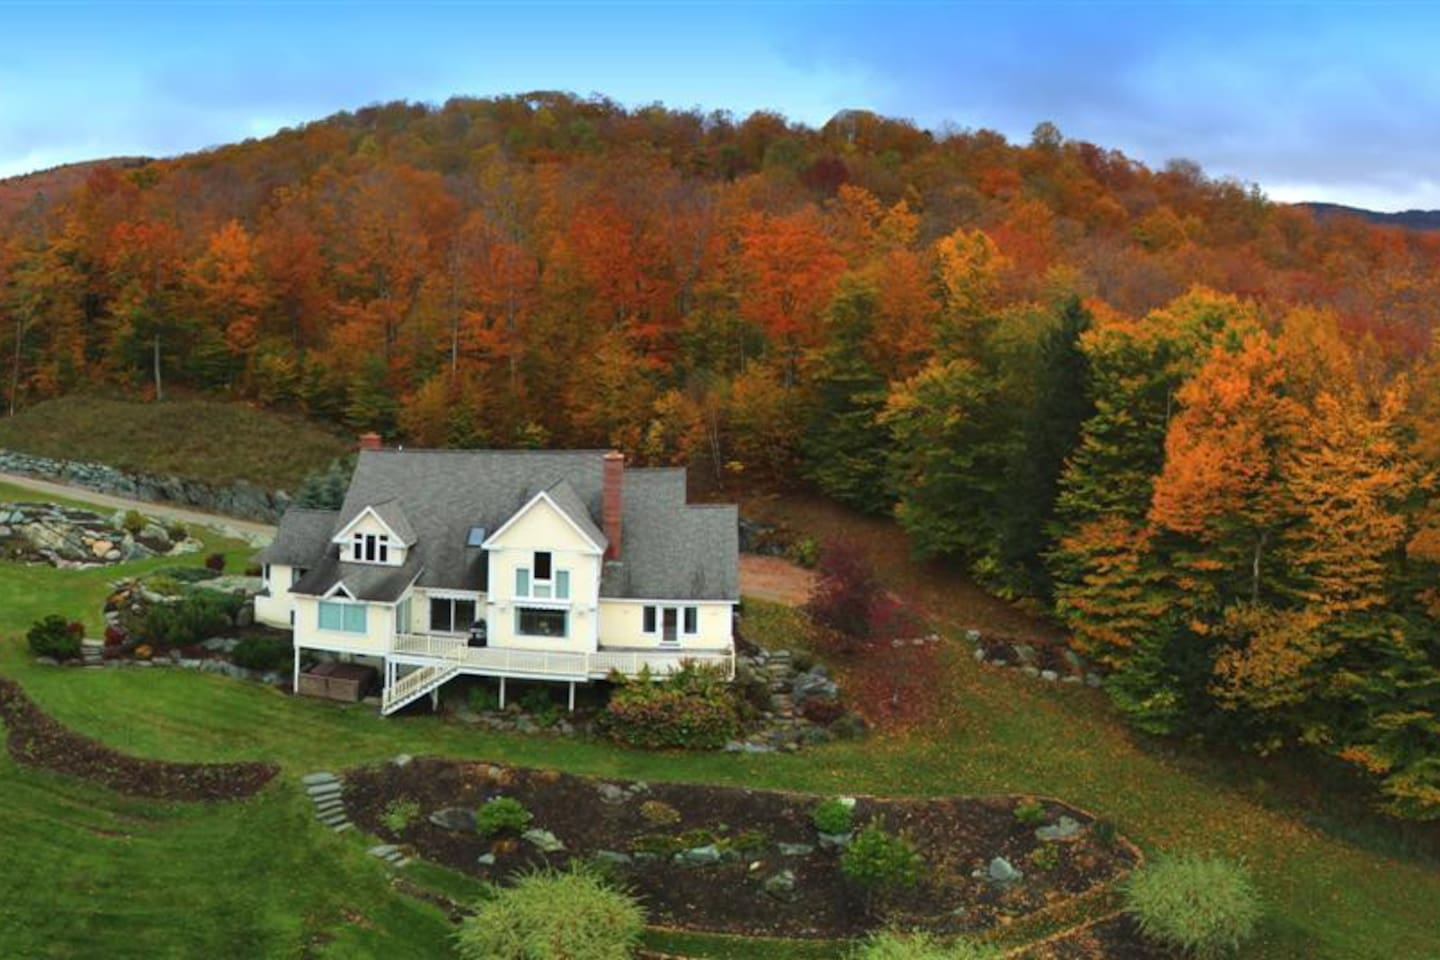 A house surrounded by fall foliage